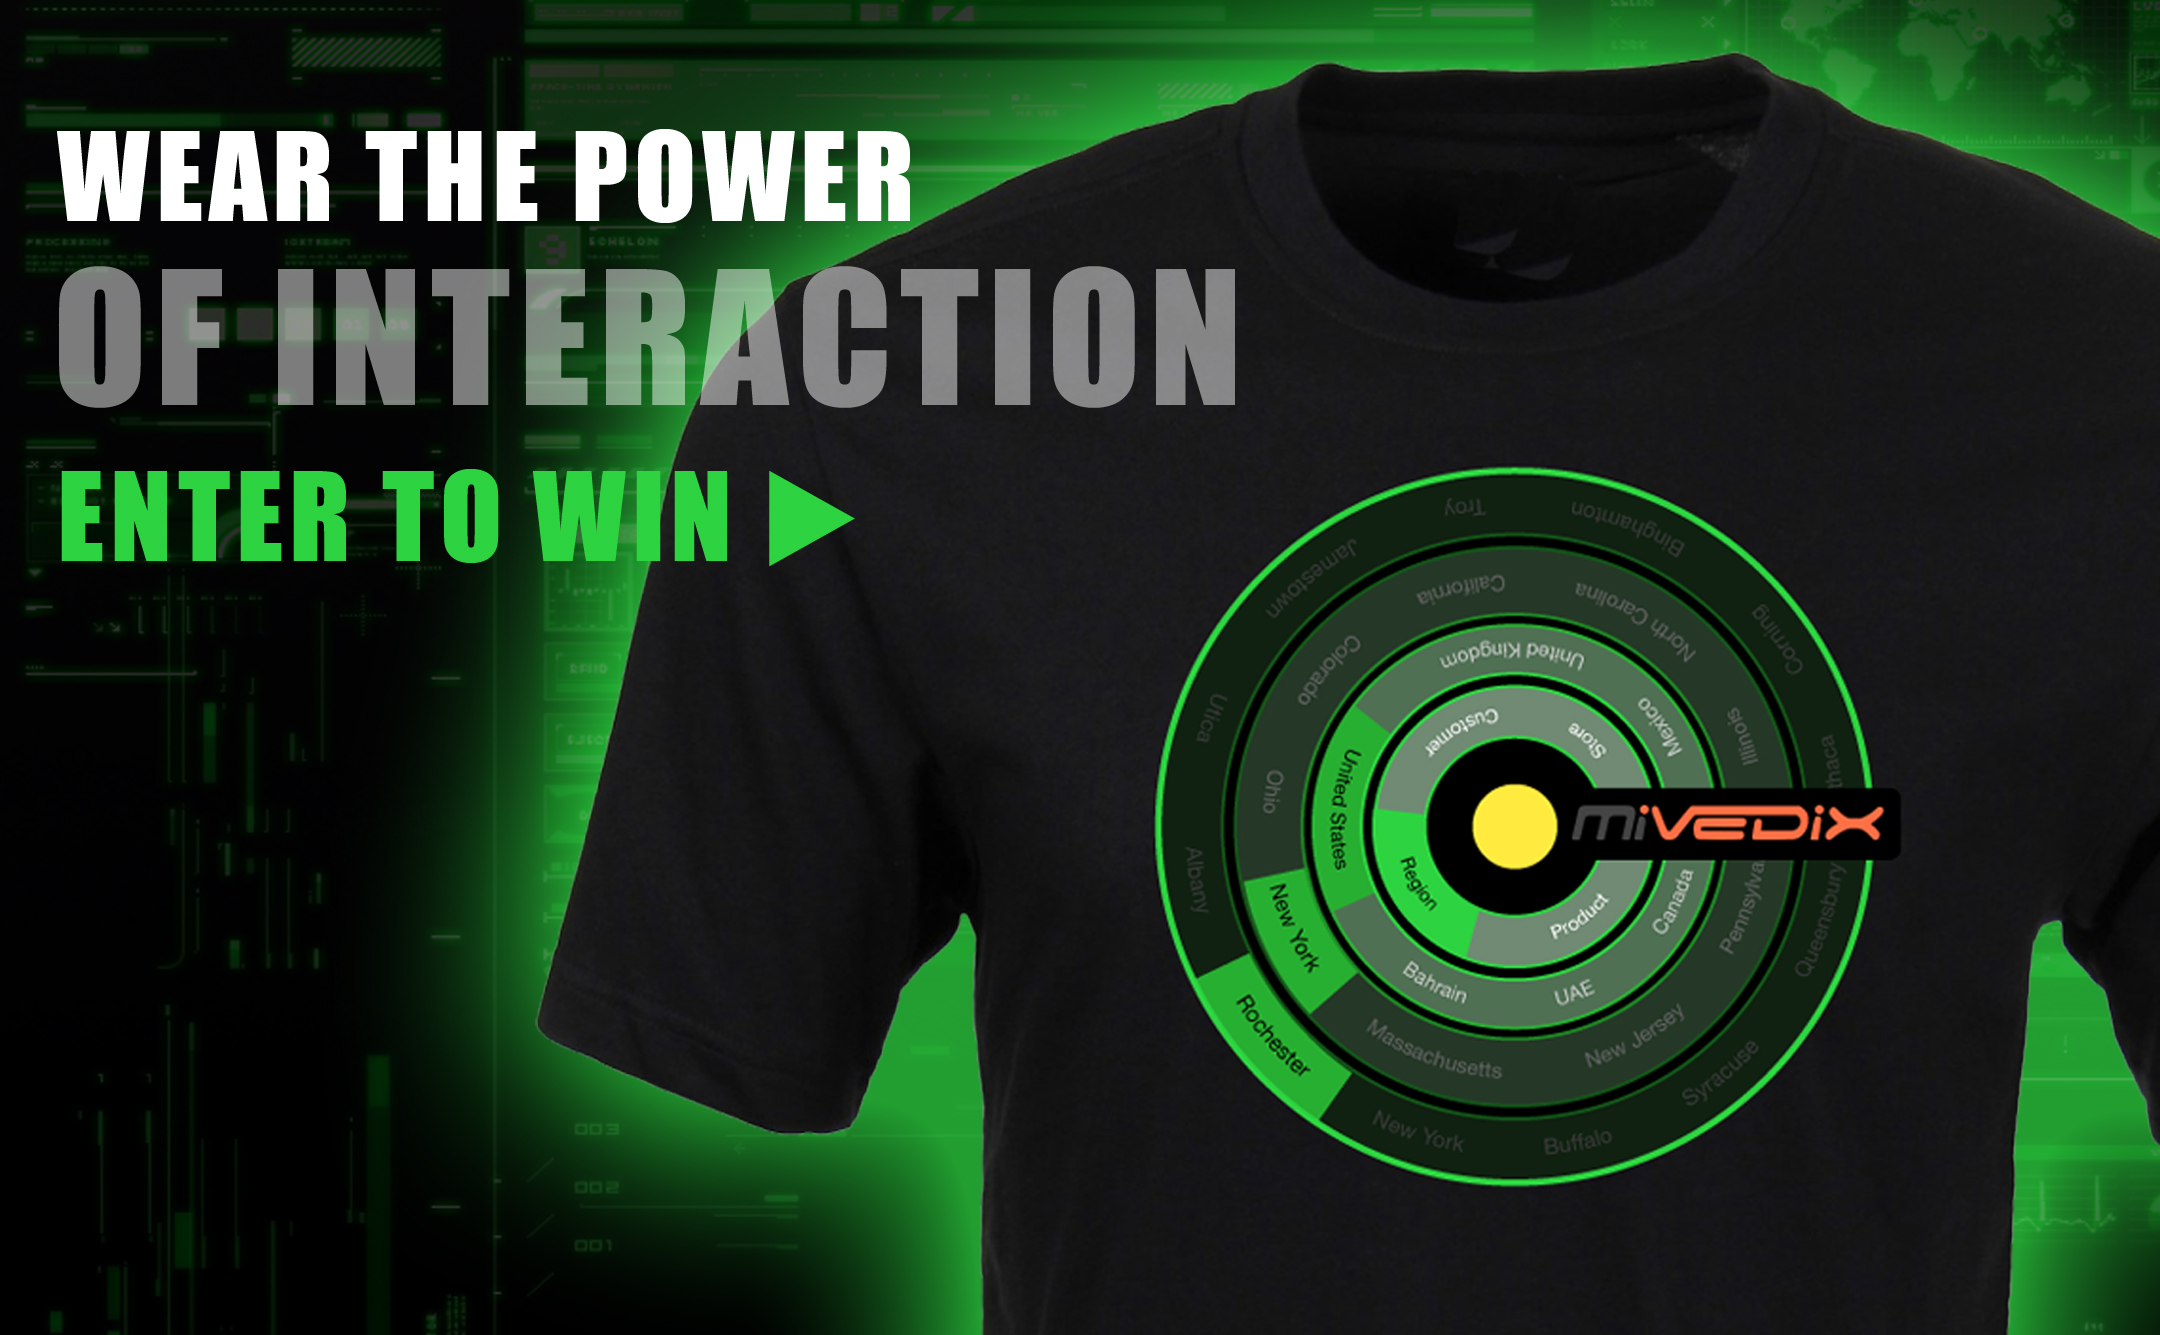 ivedix disc t-shirt contest